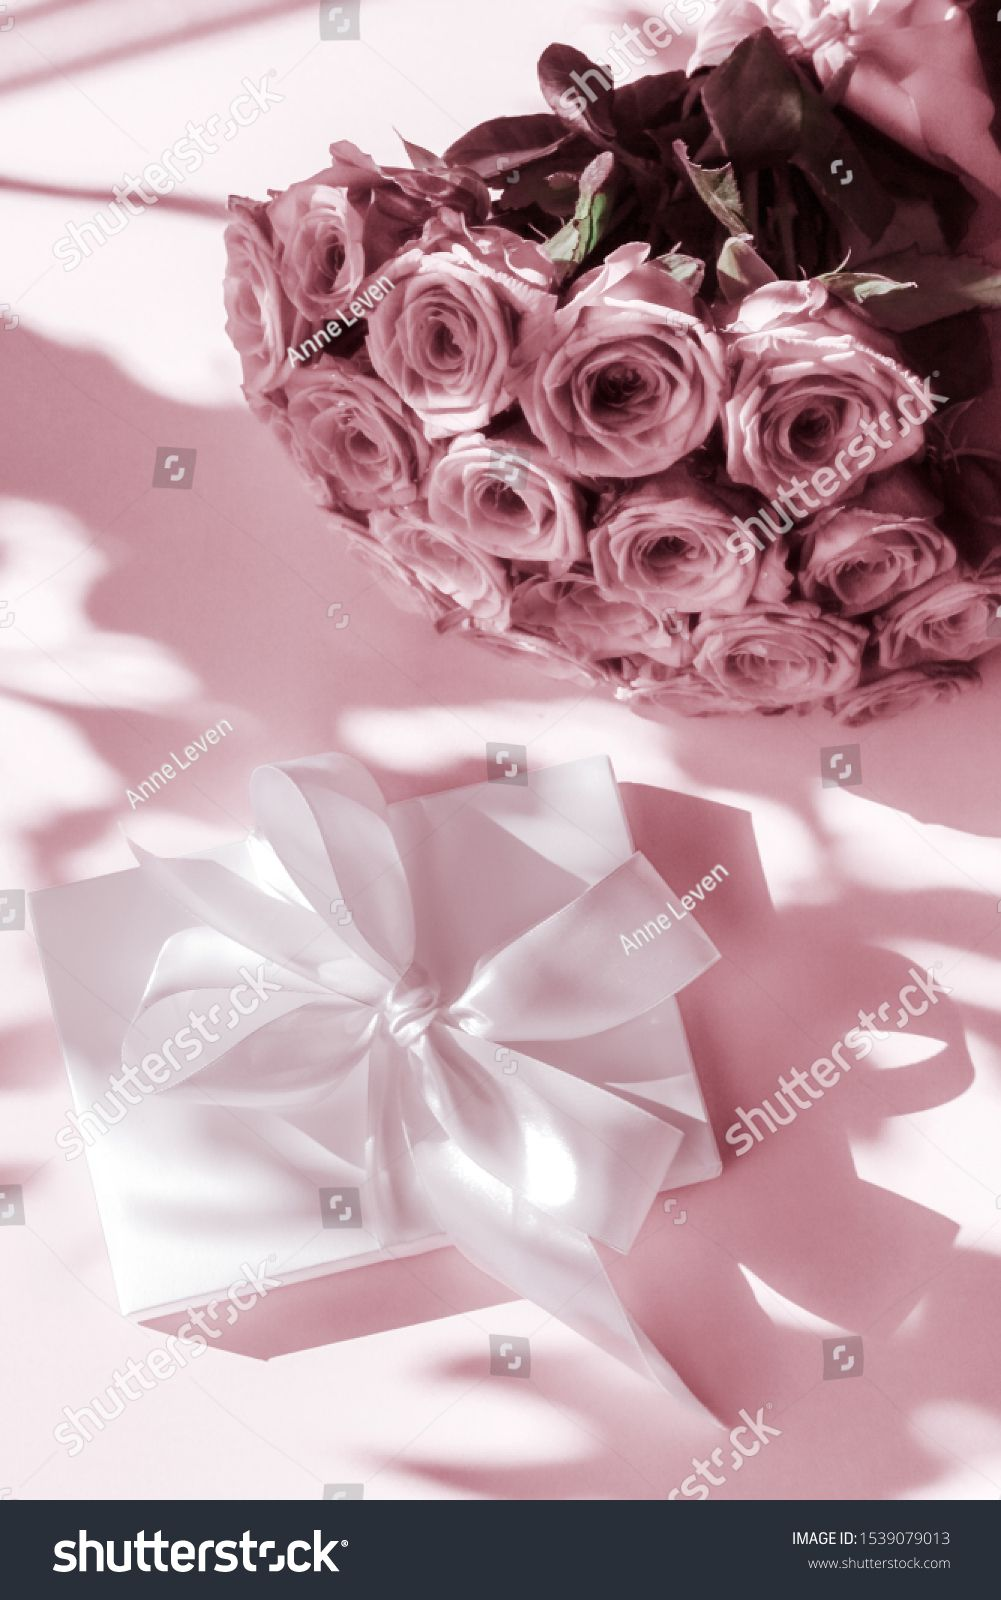 Happy holidays, luxe shopping and love gifts concept - Luxury holiday silk gift box and bouquet of roses on blush pink background, romantic surprise and flowers as birthday or Valentines Day present ,